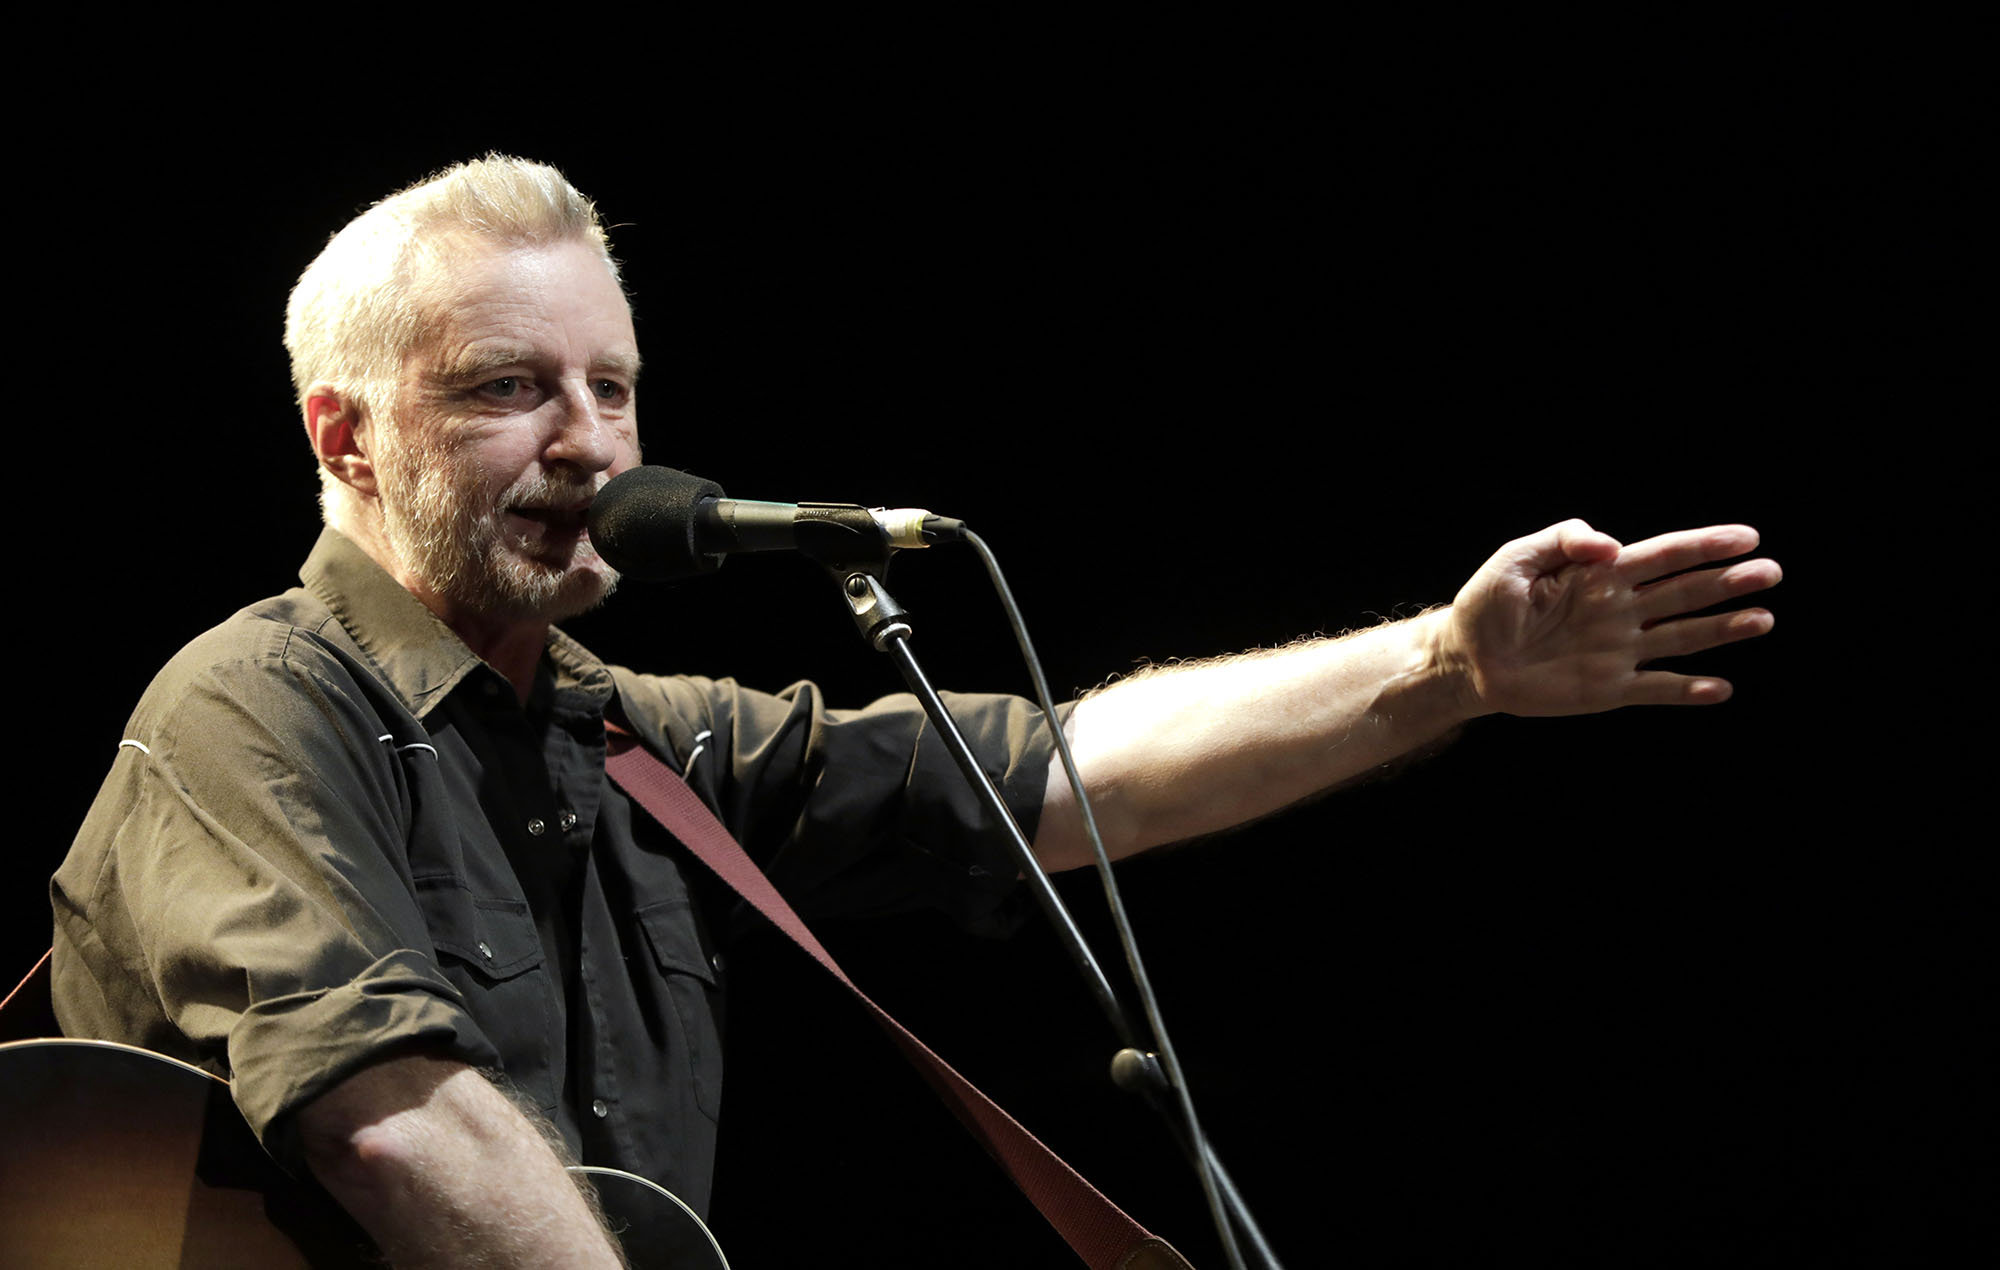 Billy Bragg at Glastonbury: the Bard of Pilton brings politics, anecdotes and a prediction for the Lionesses | NME